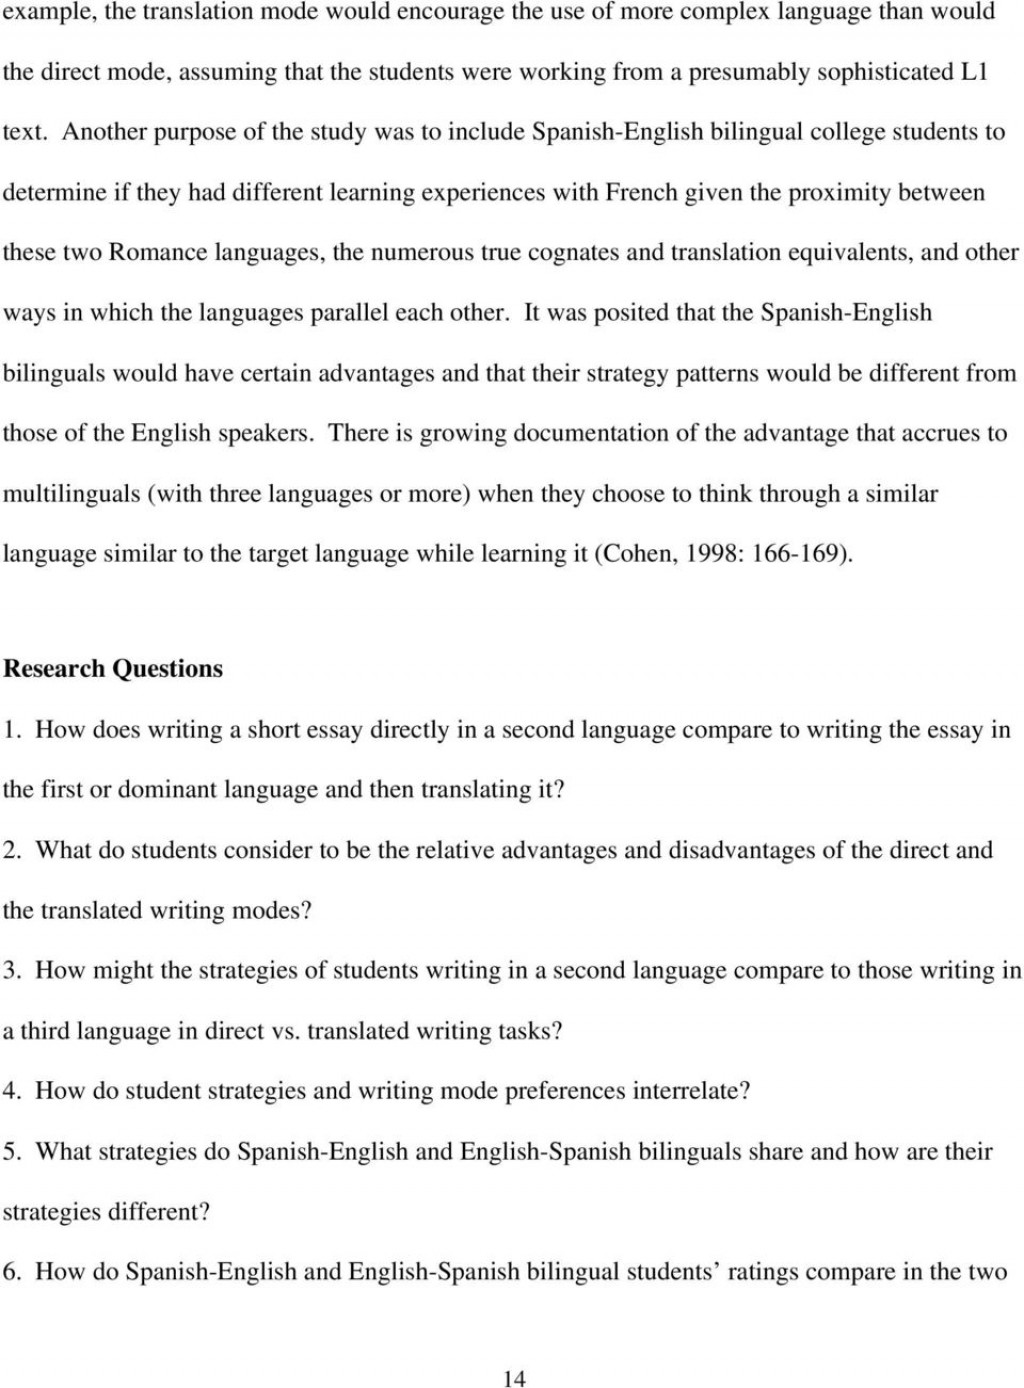 003 Translate Essay To Spanish Writing An In Direct Vs Translated What How Write About Yourself Pa Teaching Google Your My Tips Essays Phrases Staggering Into Does Mean Large